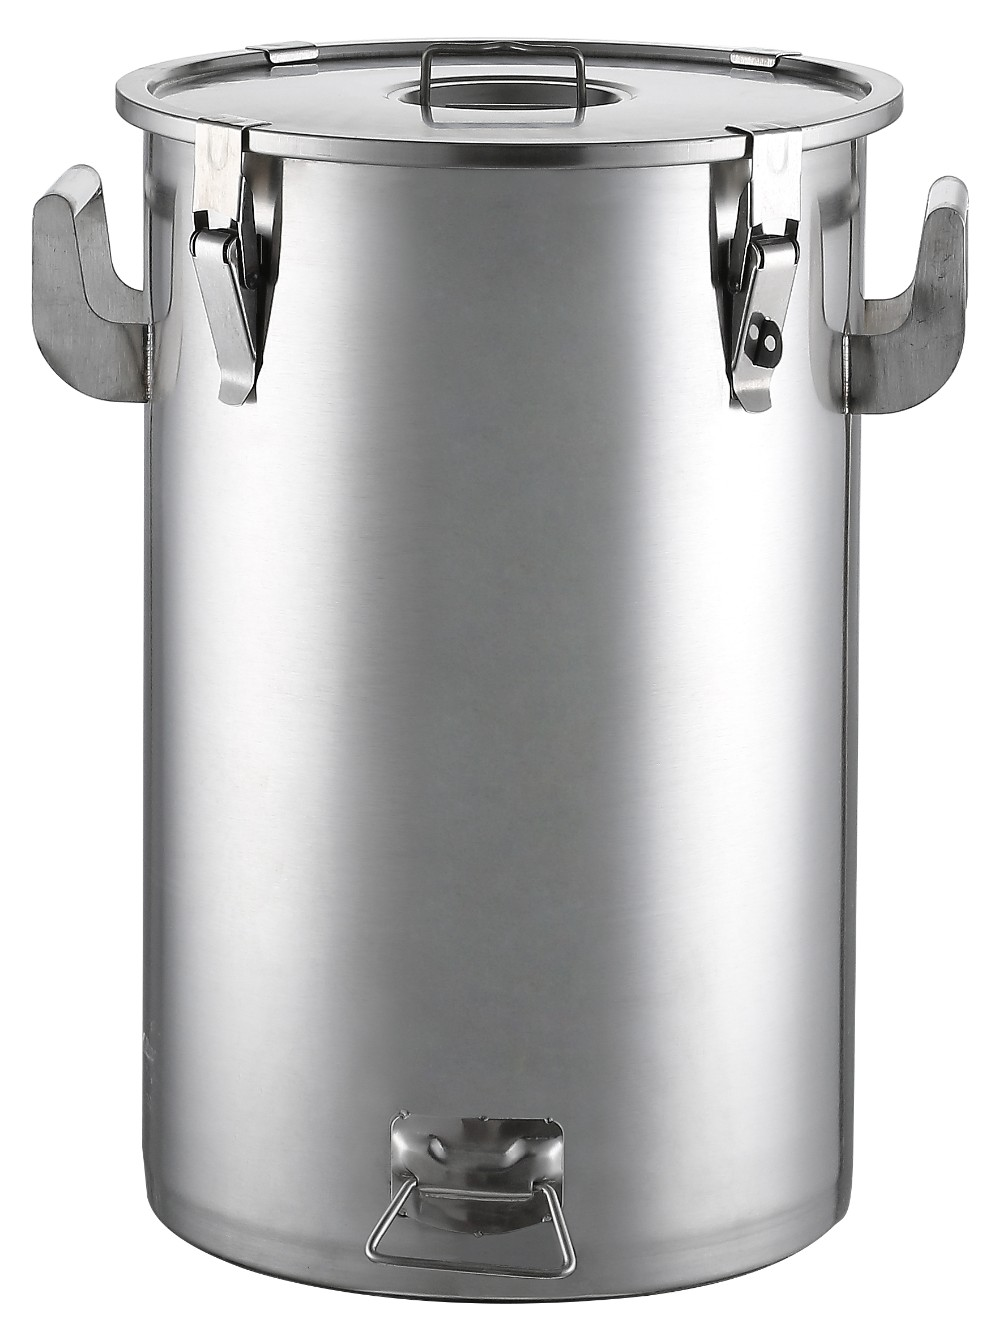 Stainless Steel Air Tight Stock Pot With Clamps